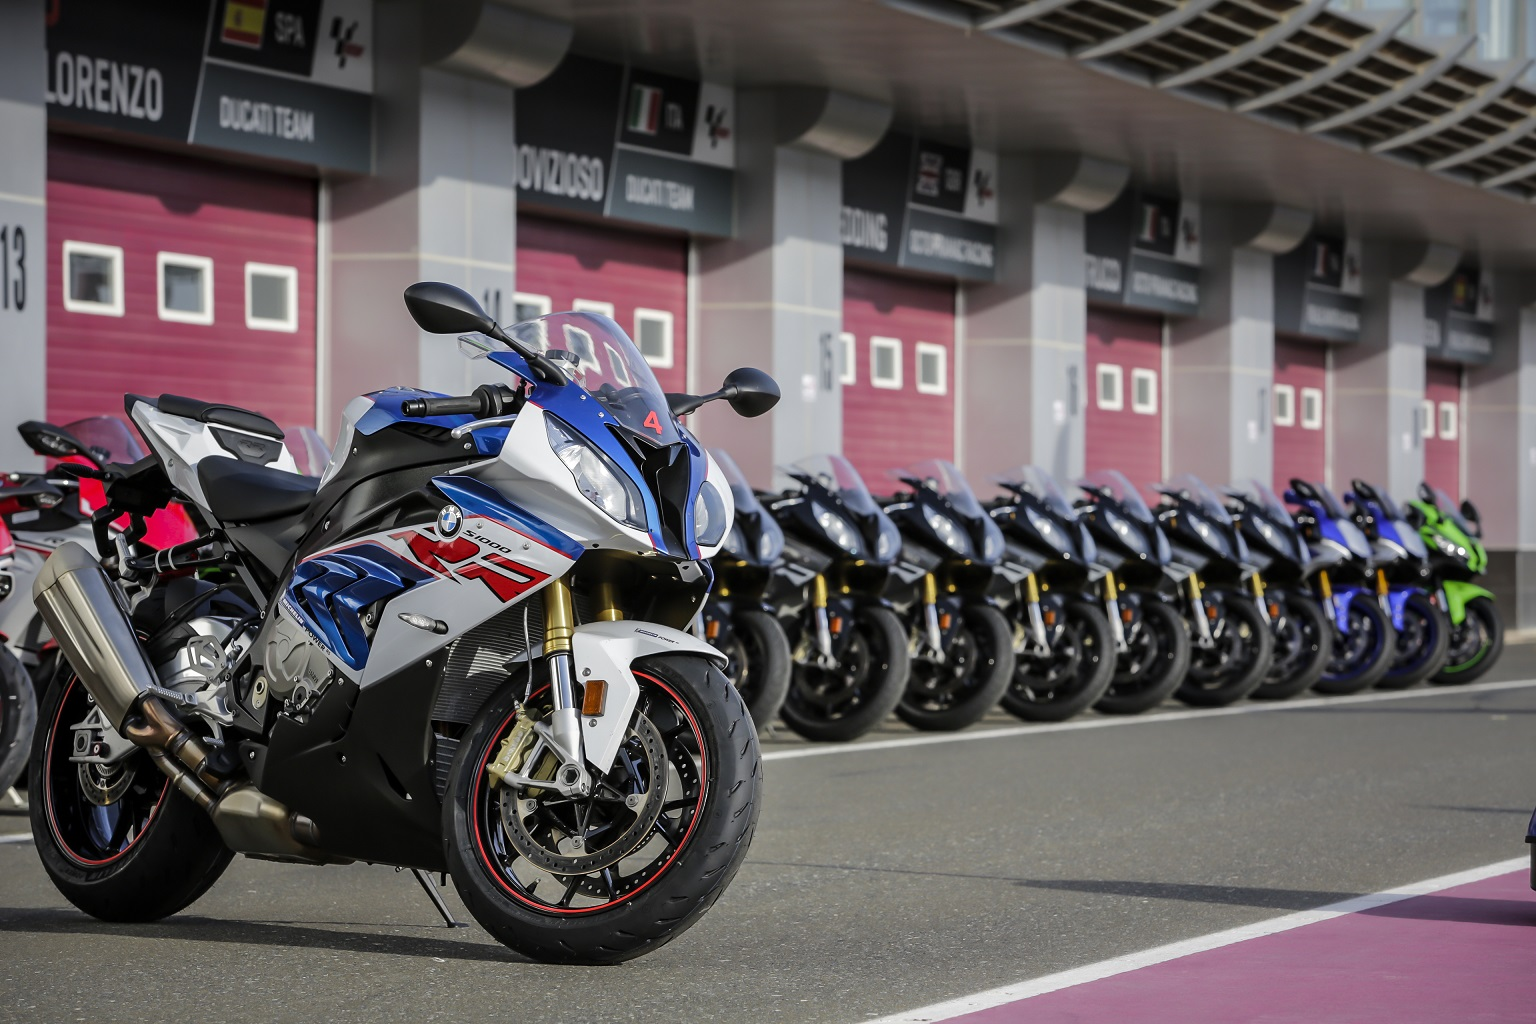 S1000RR, R1M, ZX-10R, Panigale, RSV4, CBR Michelin Power RS